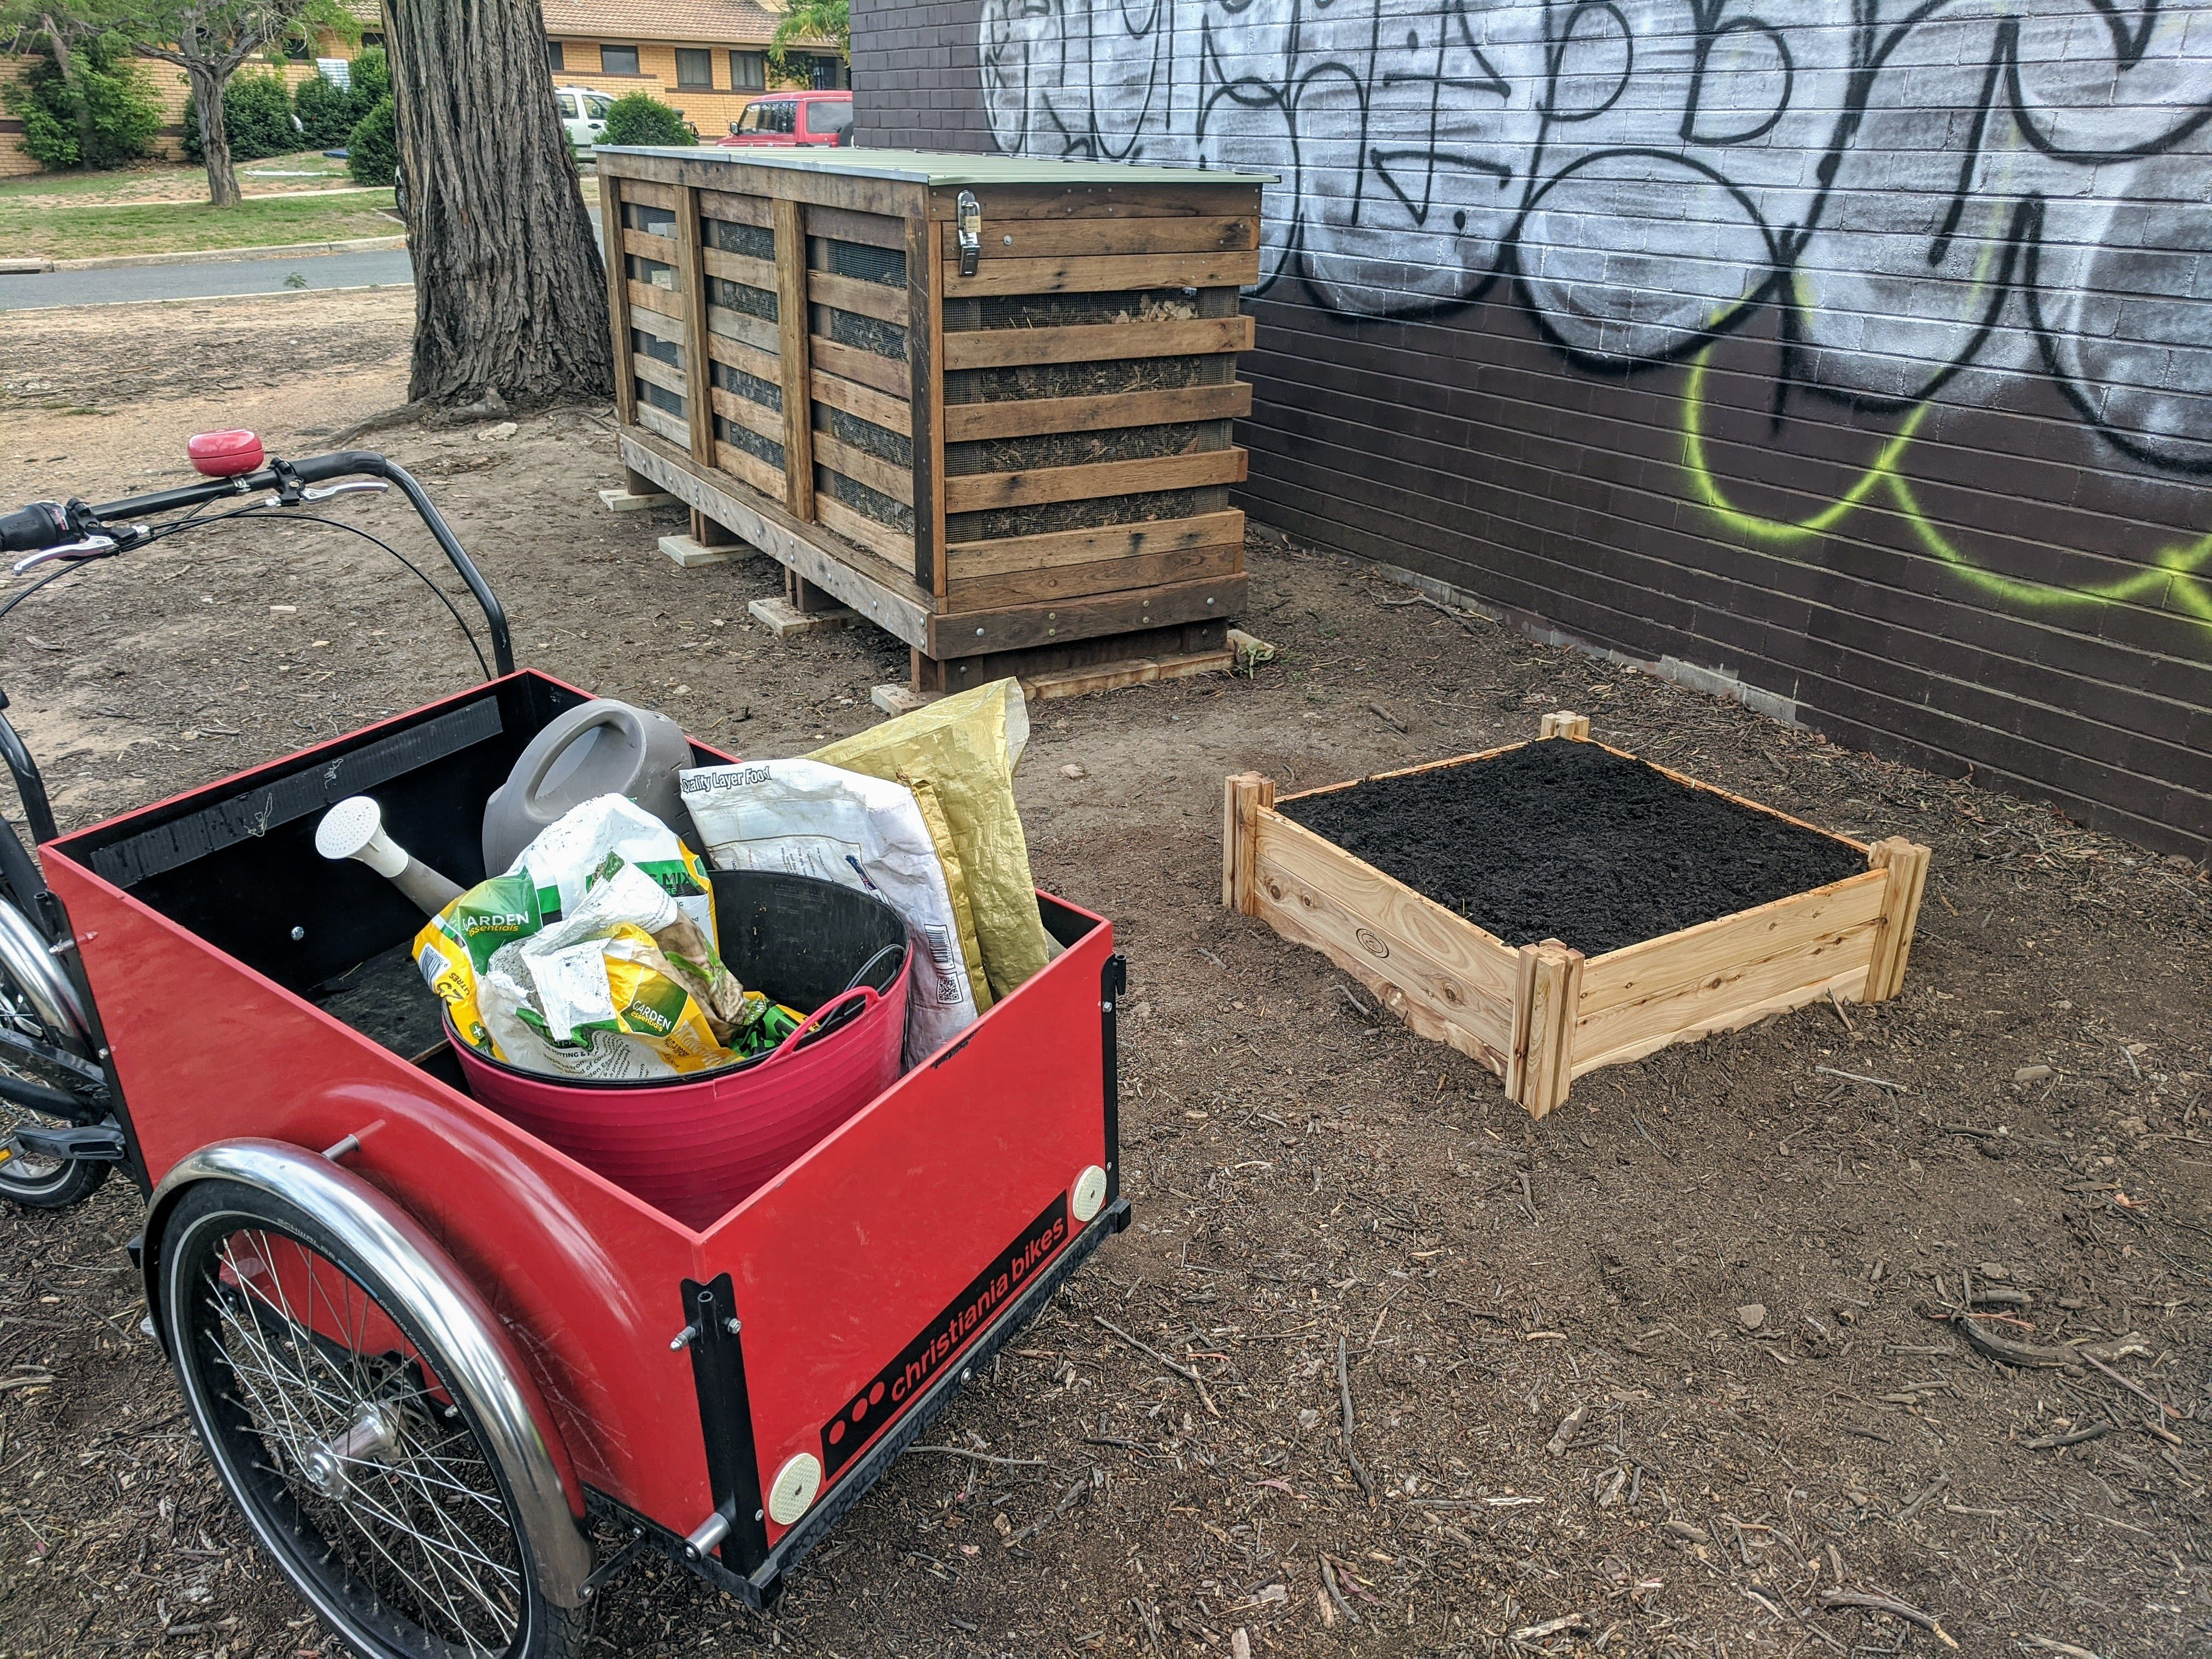 Wooden 3-bay composter, small garden bed, electric trike and tools